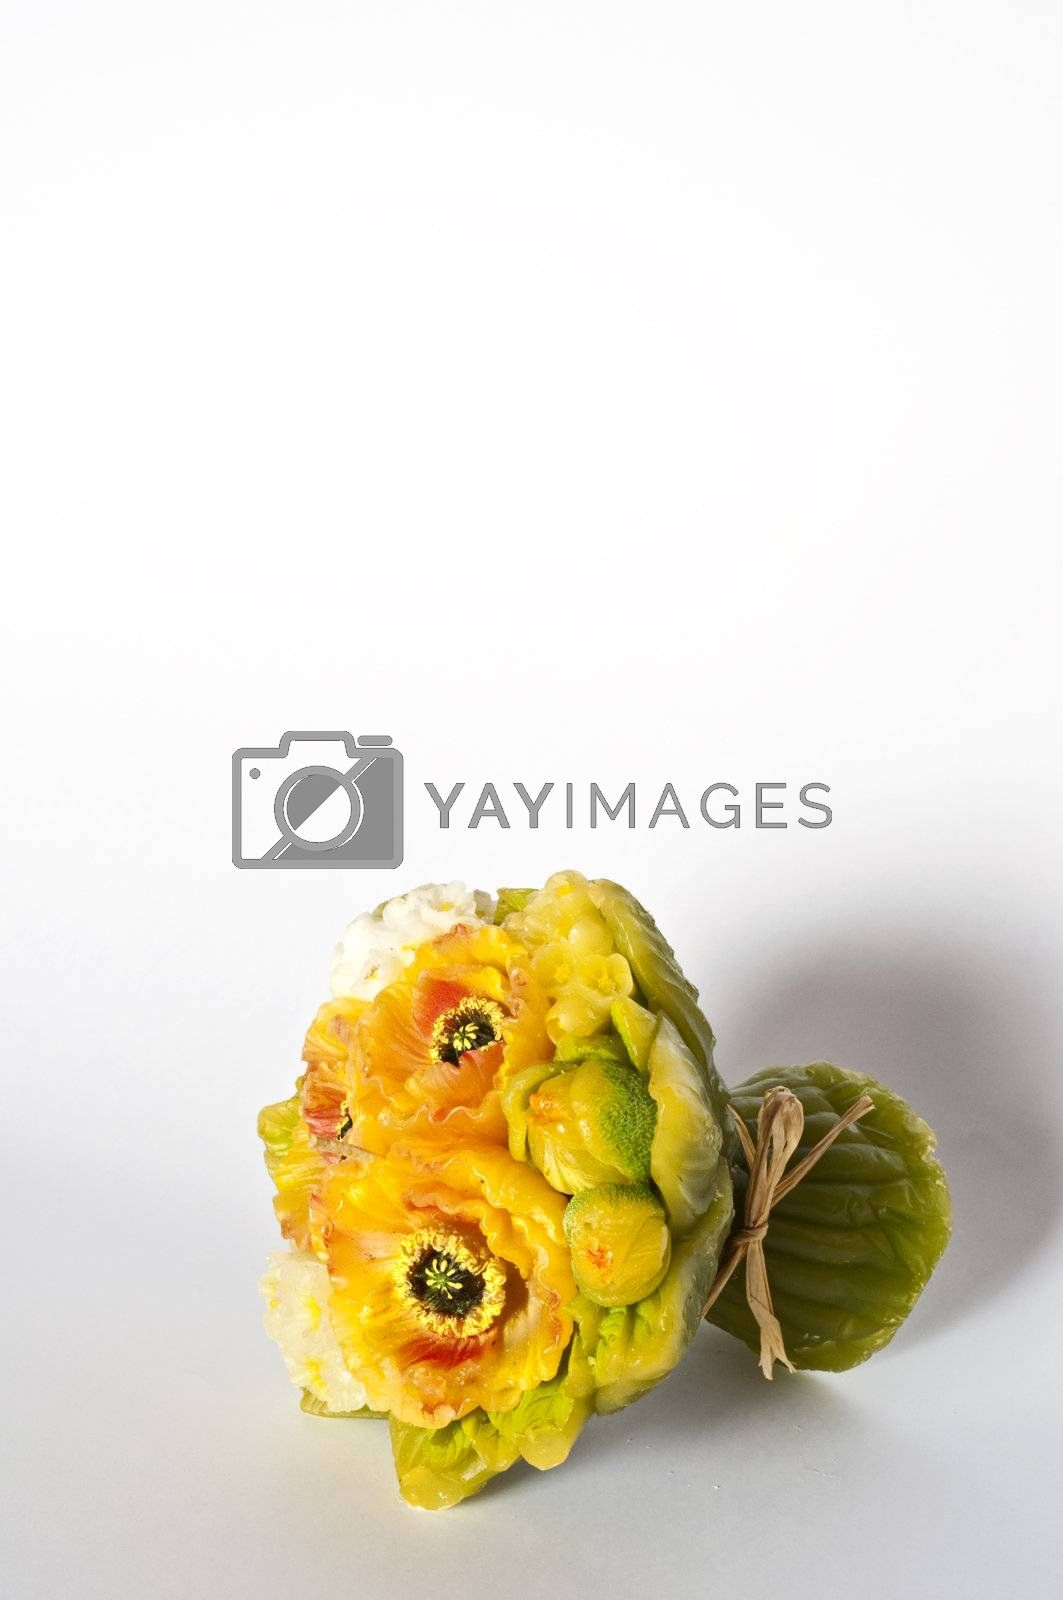 candle-shaped bouquet of flowers on a white background